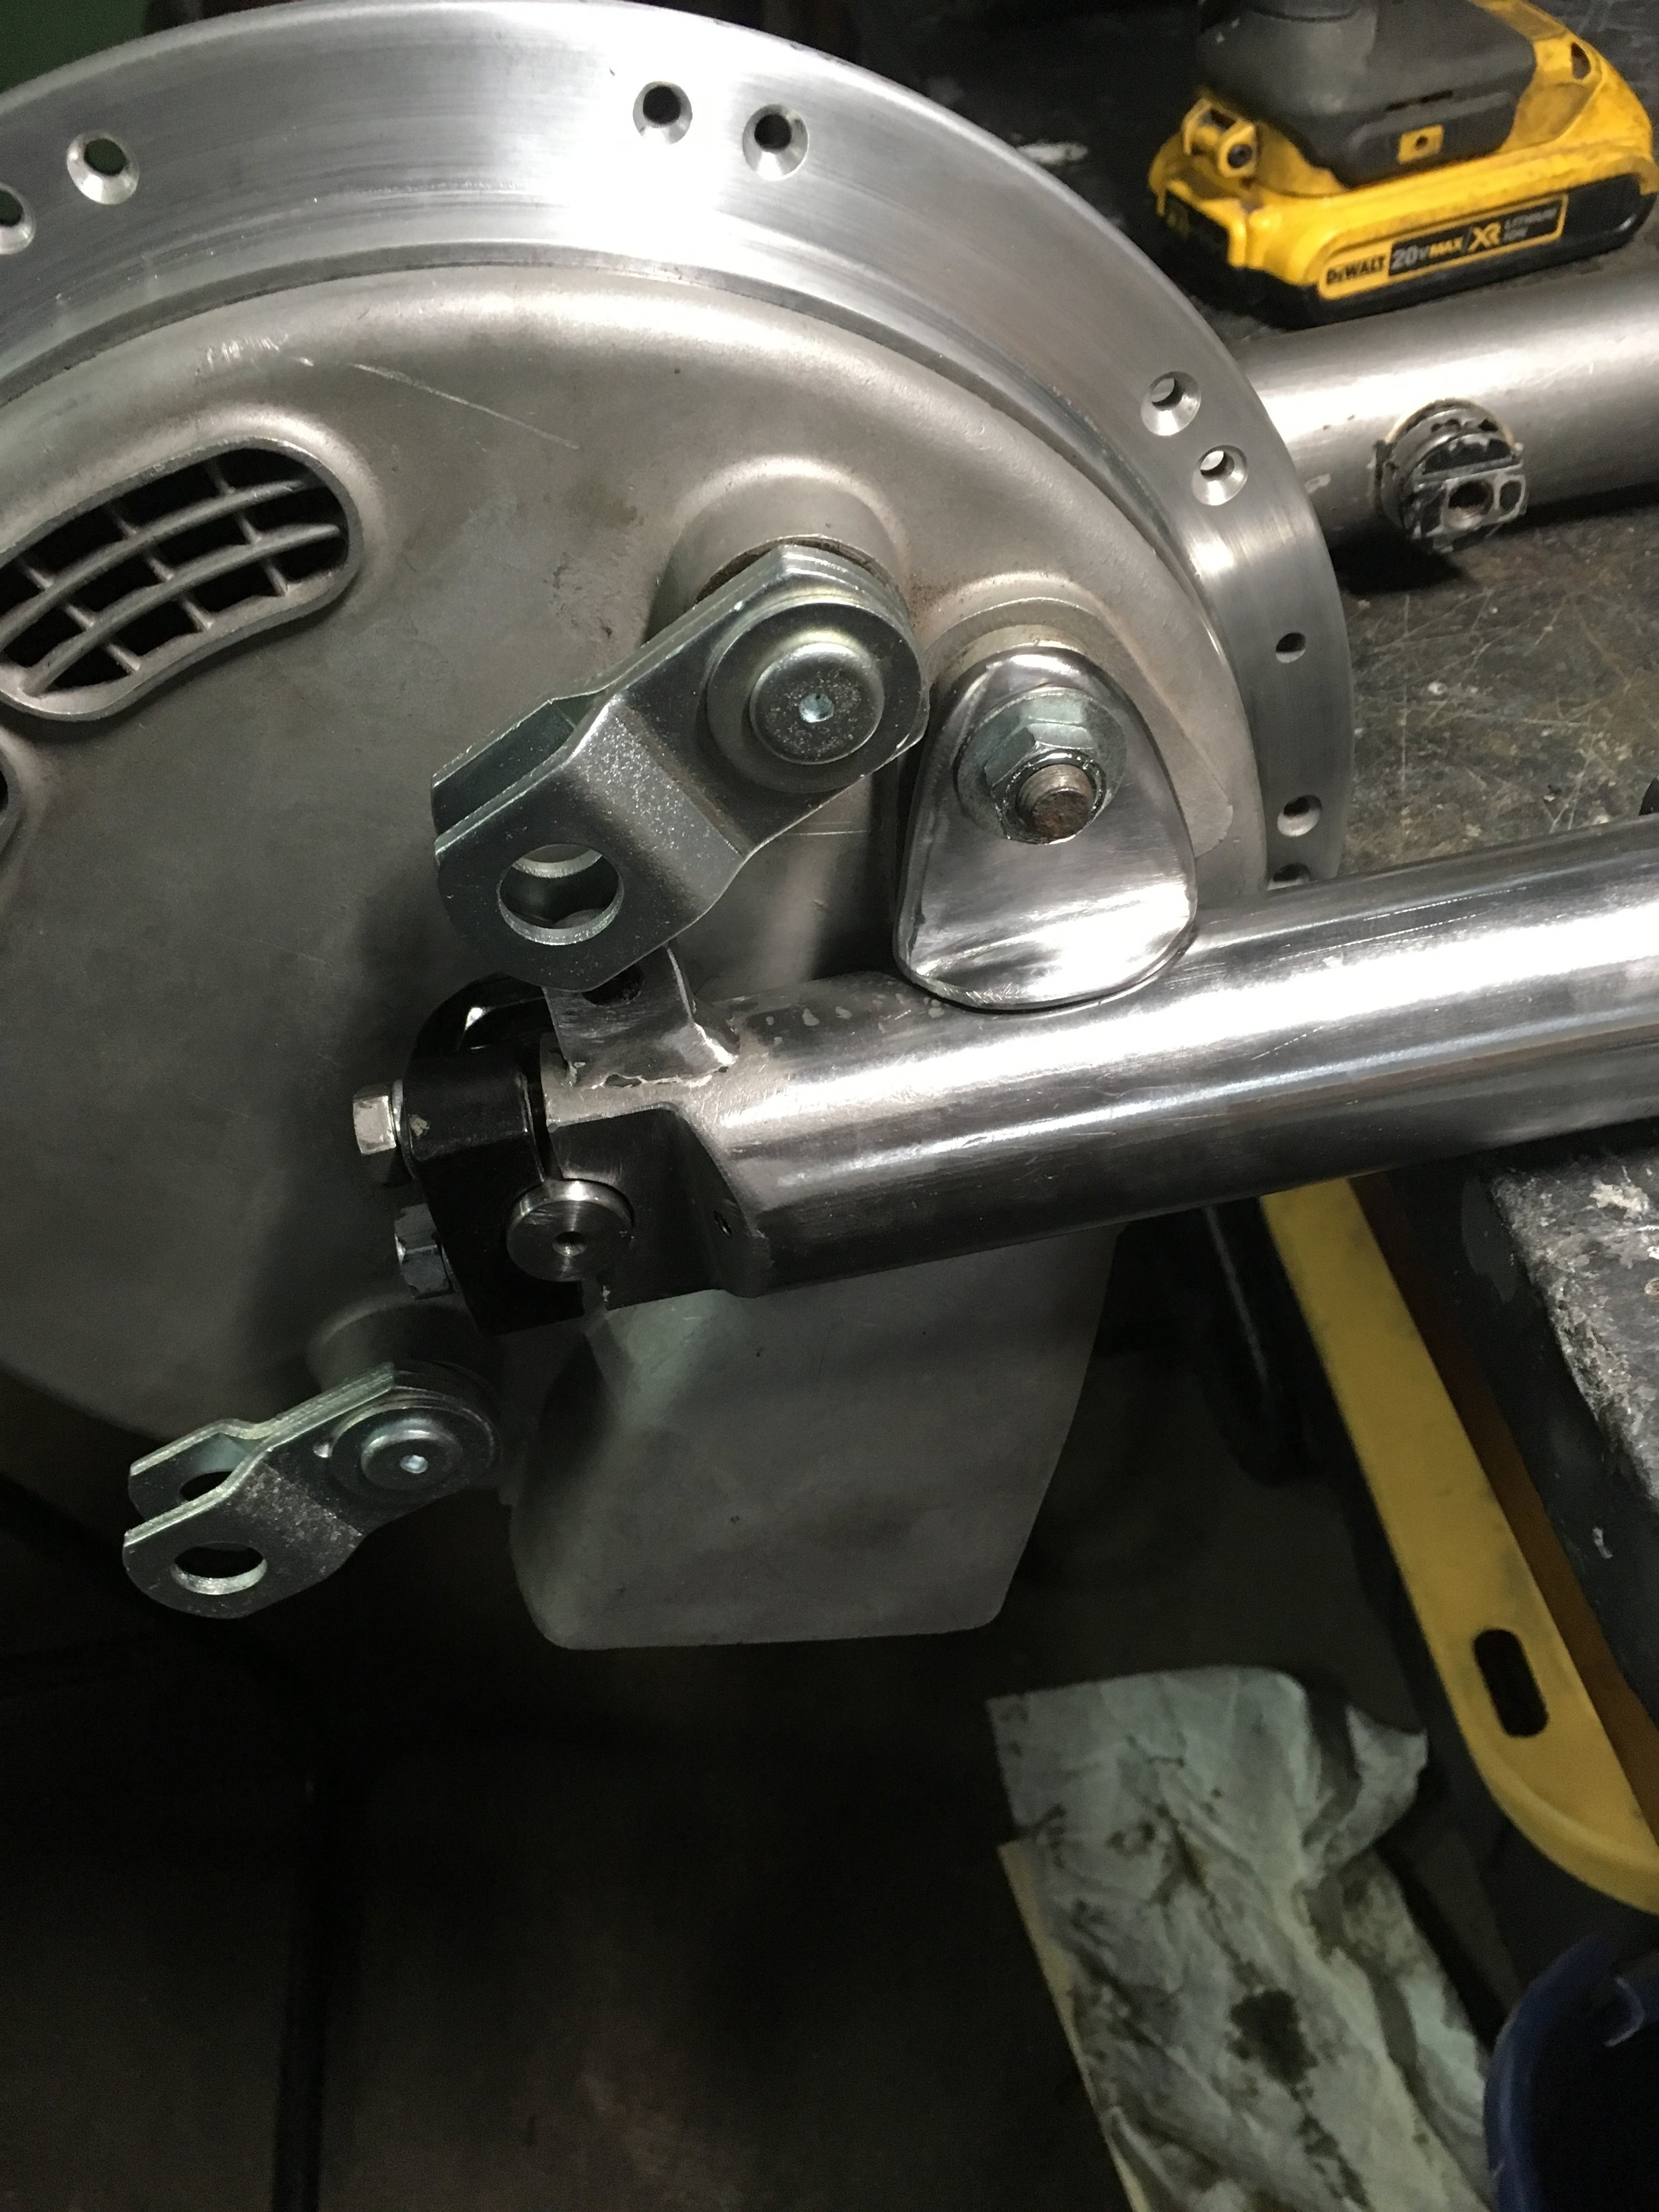 After making the brake stay bracket, it was mocked up and a line scribed around the base to mark where it was to be mounted.